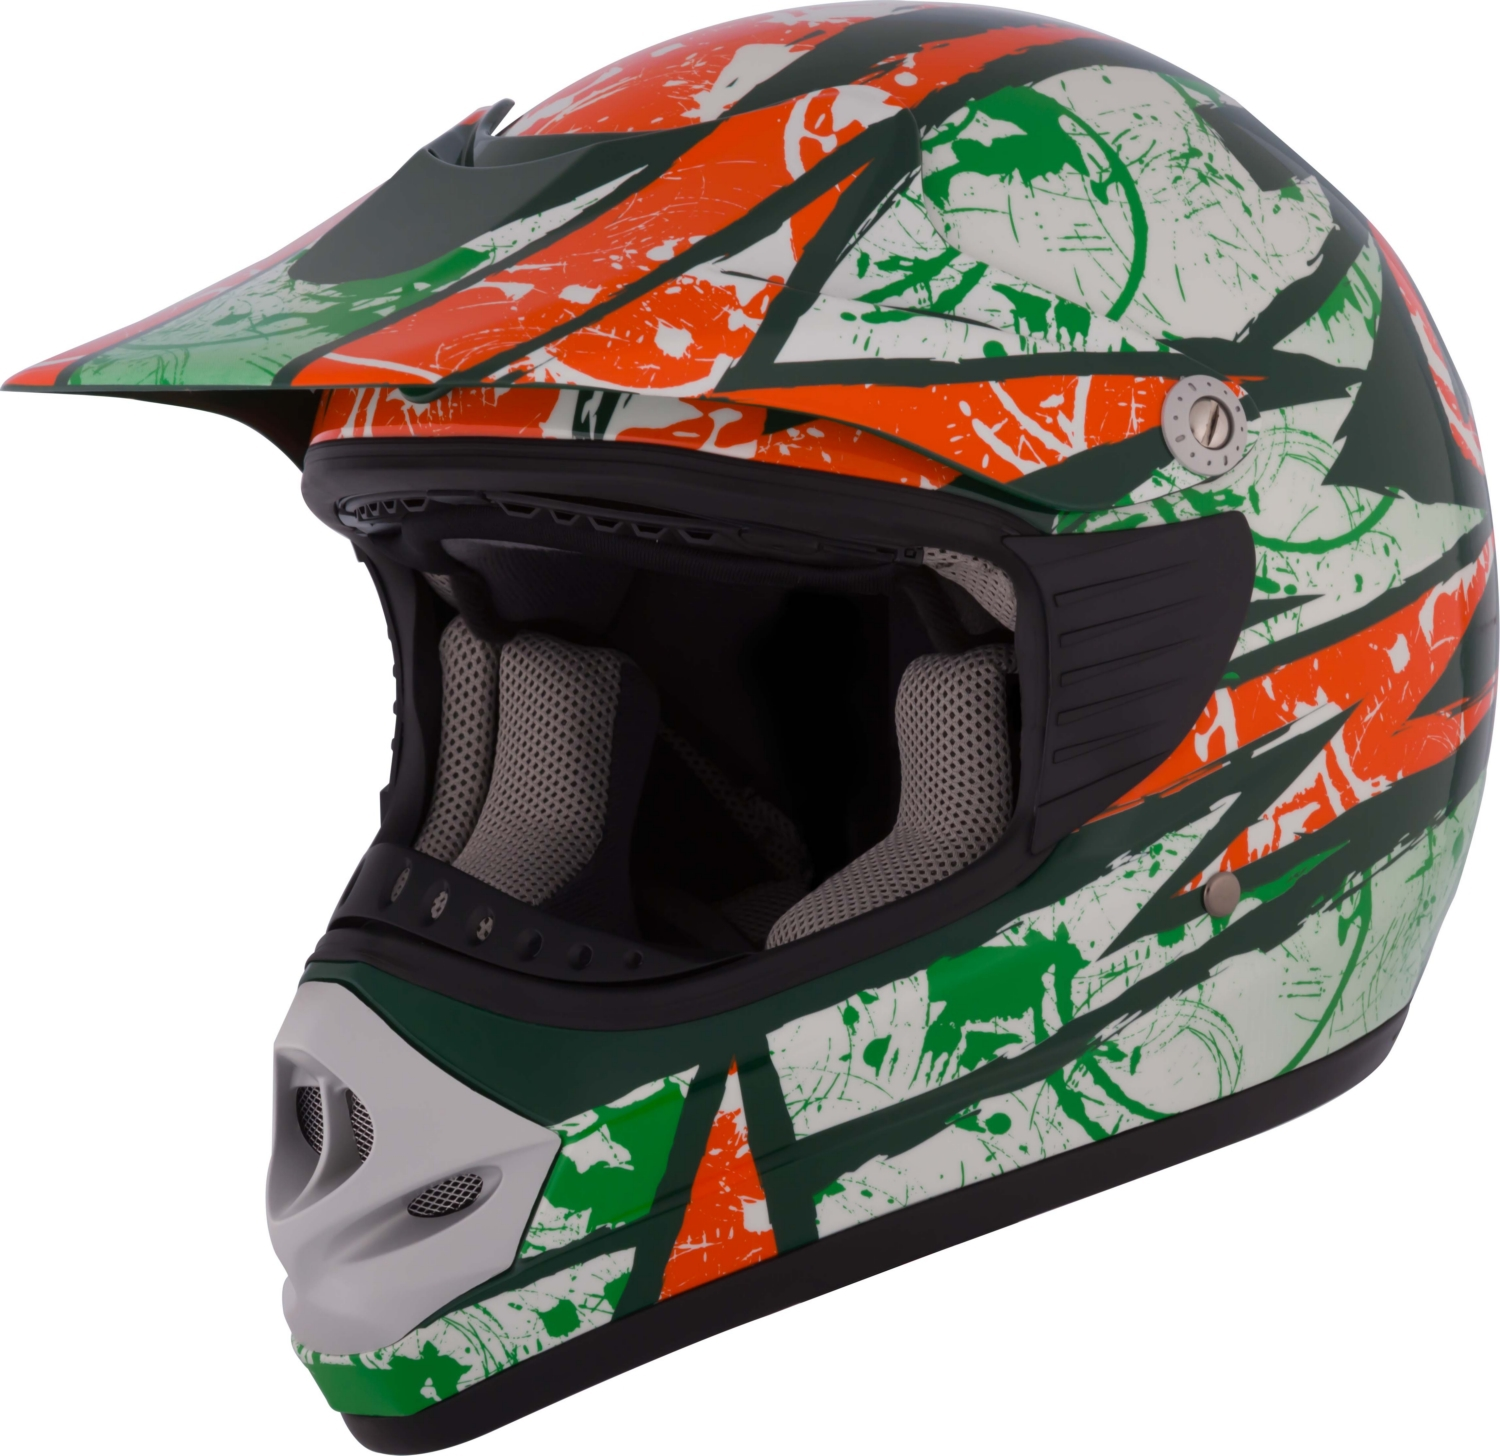 CKX Flaky TX218Y Off-Road Helmet - Youth